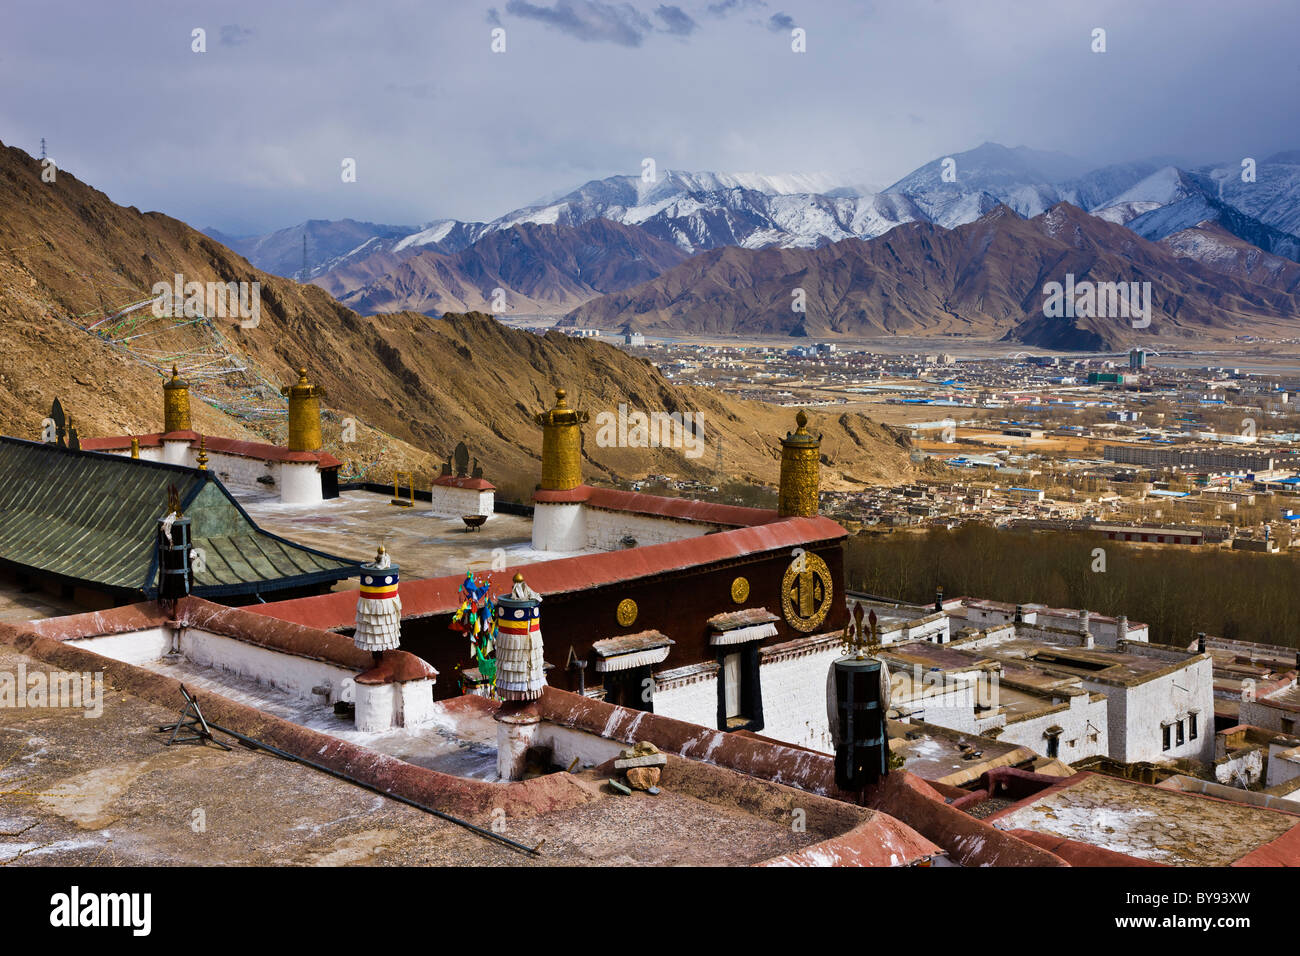 Downtown Lhasa and the Lhasa Valley from the roof of Drepung Monastery, Lhasa, Tibet. JMH4541 - Stock Image